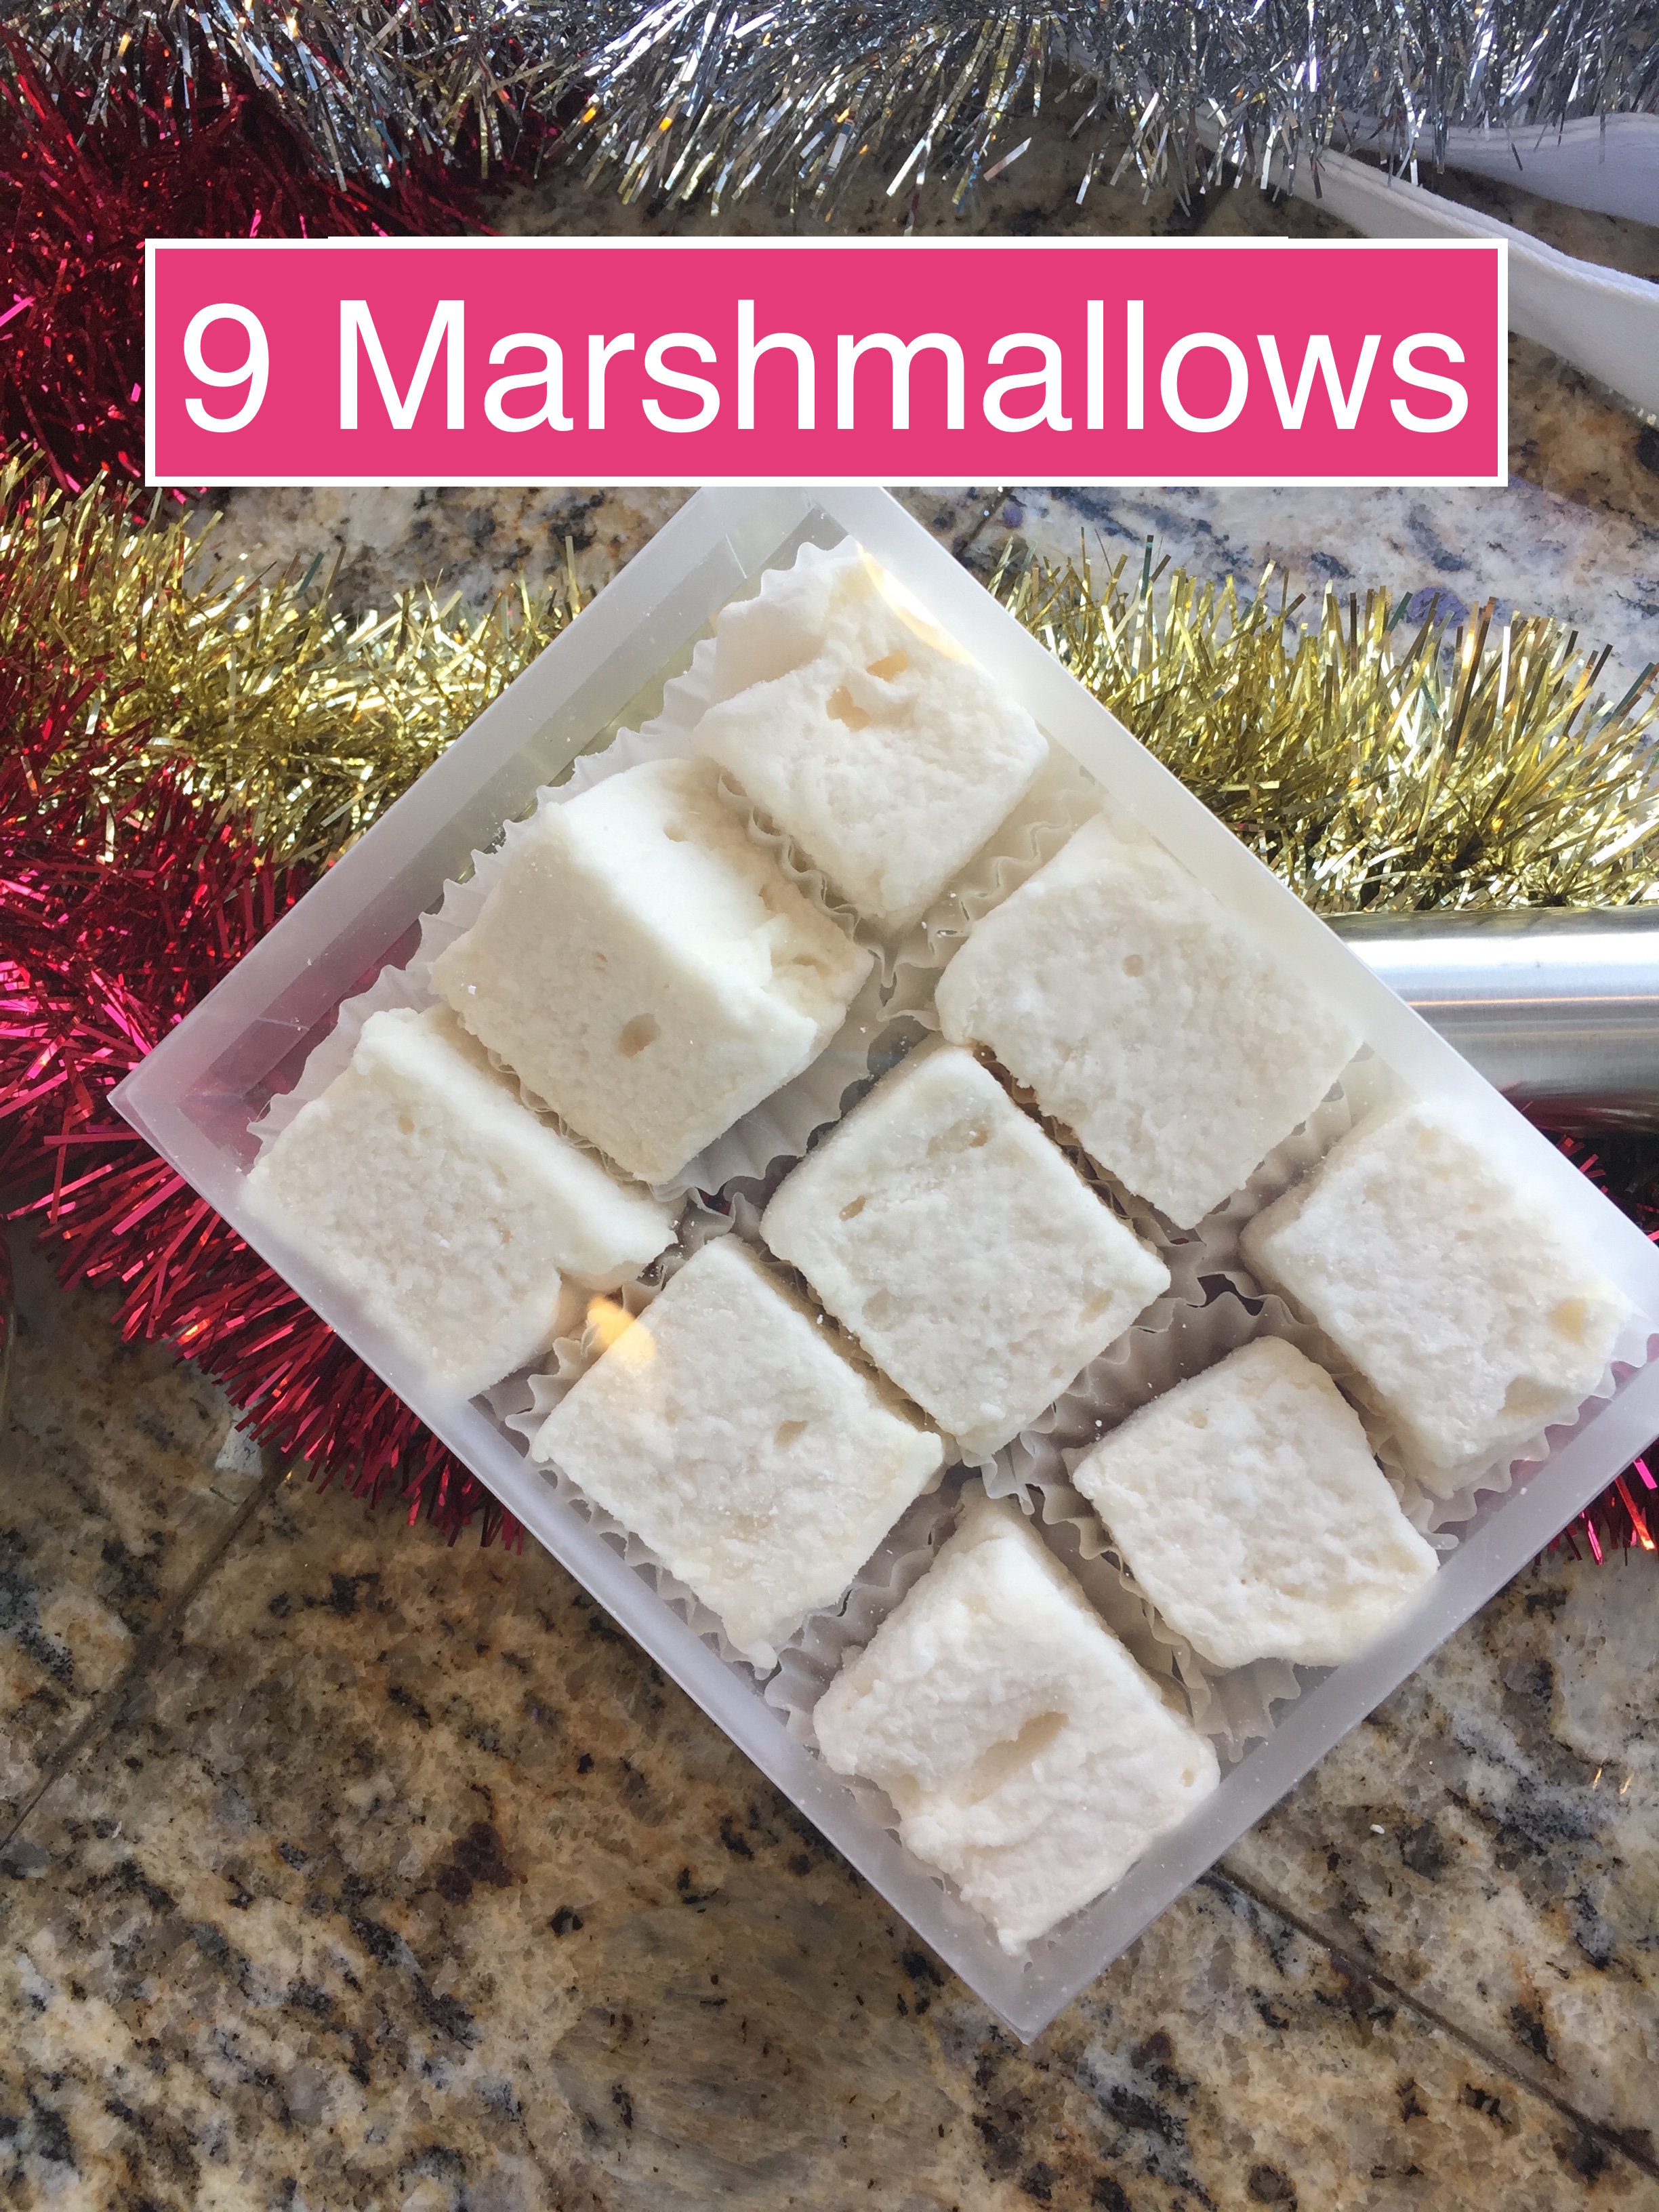 9 Marshmallows.JPG